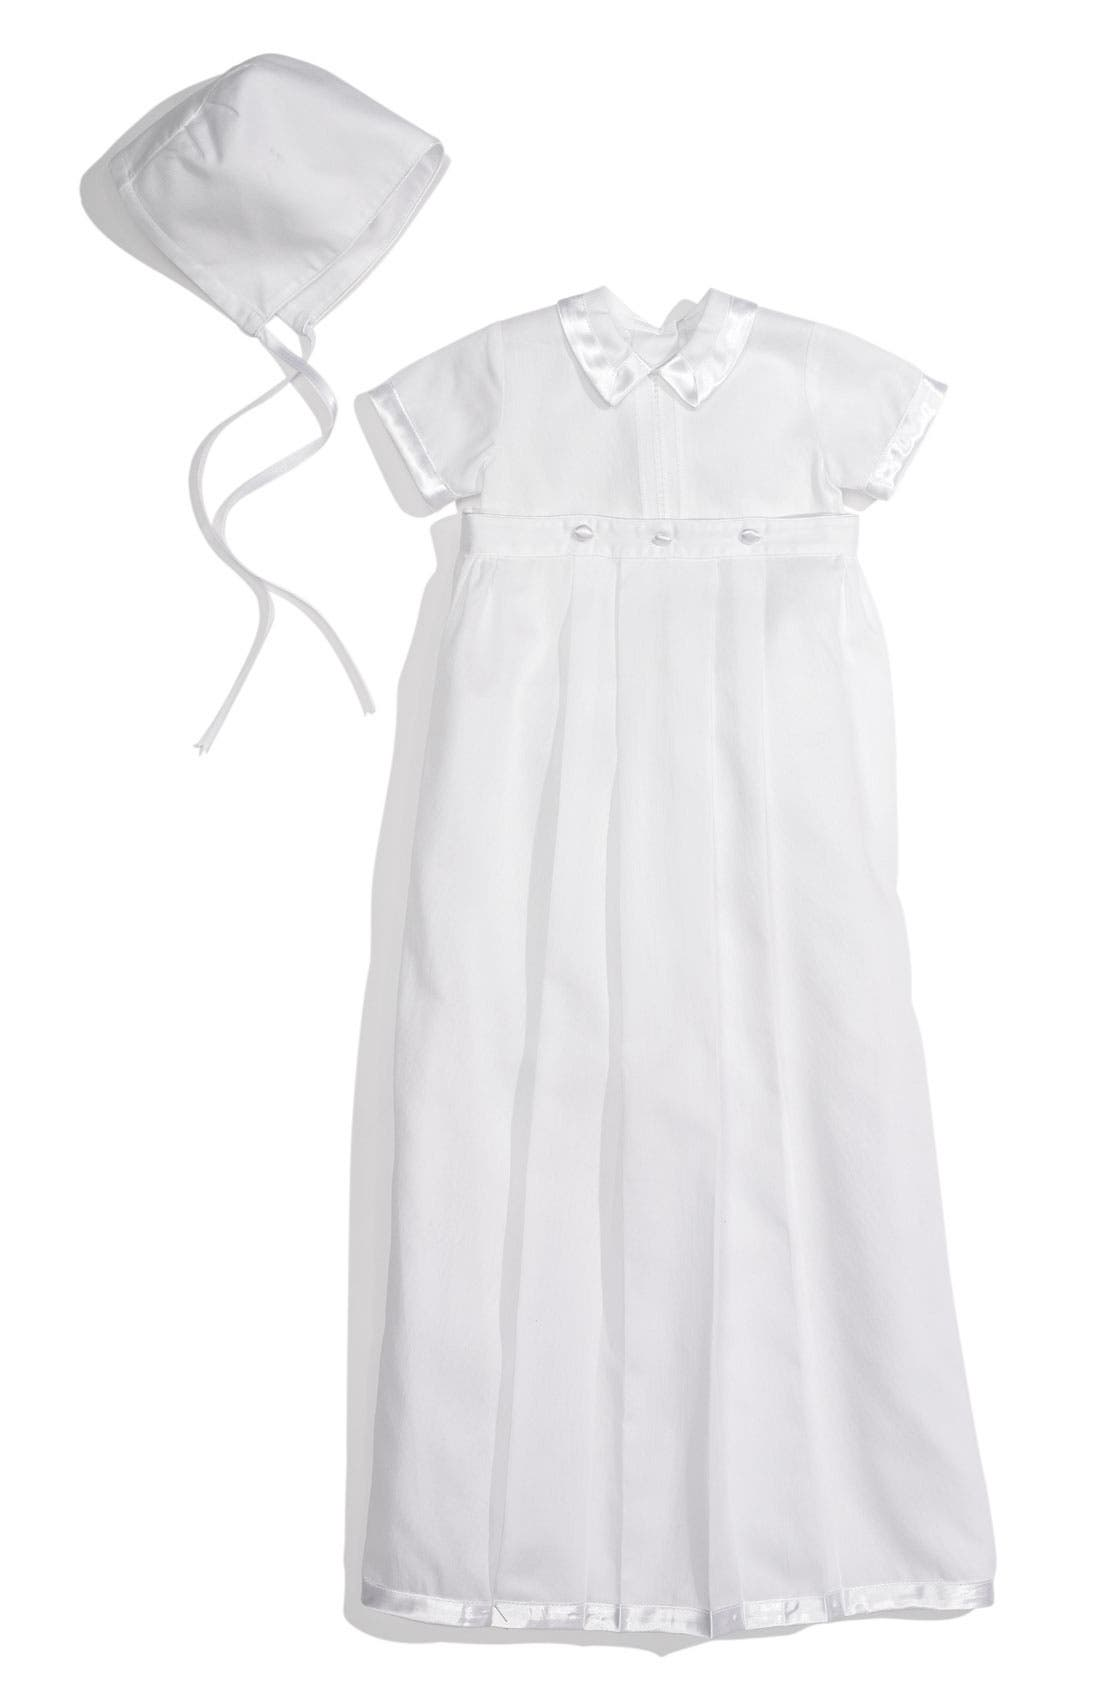 Main Image - Kissy Kissy Convertible Christening Gown Set (Infant)